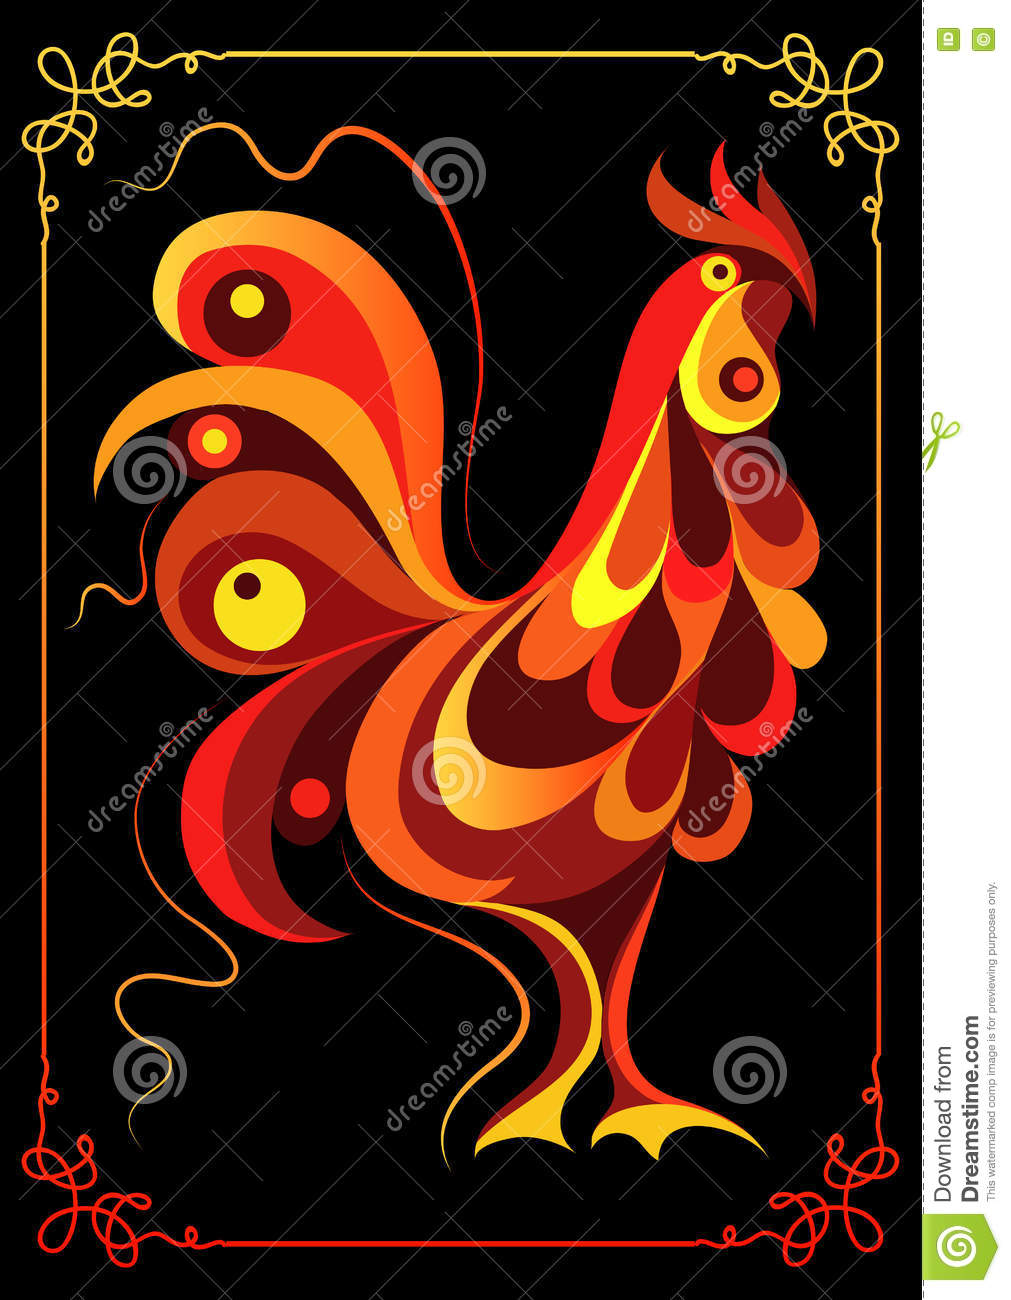 Graphic illustration with a fiery 3